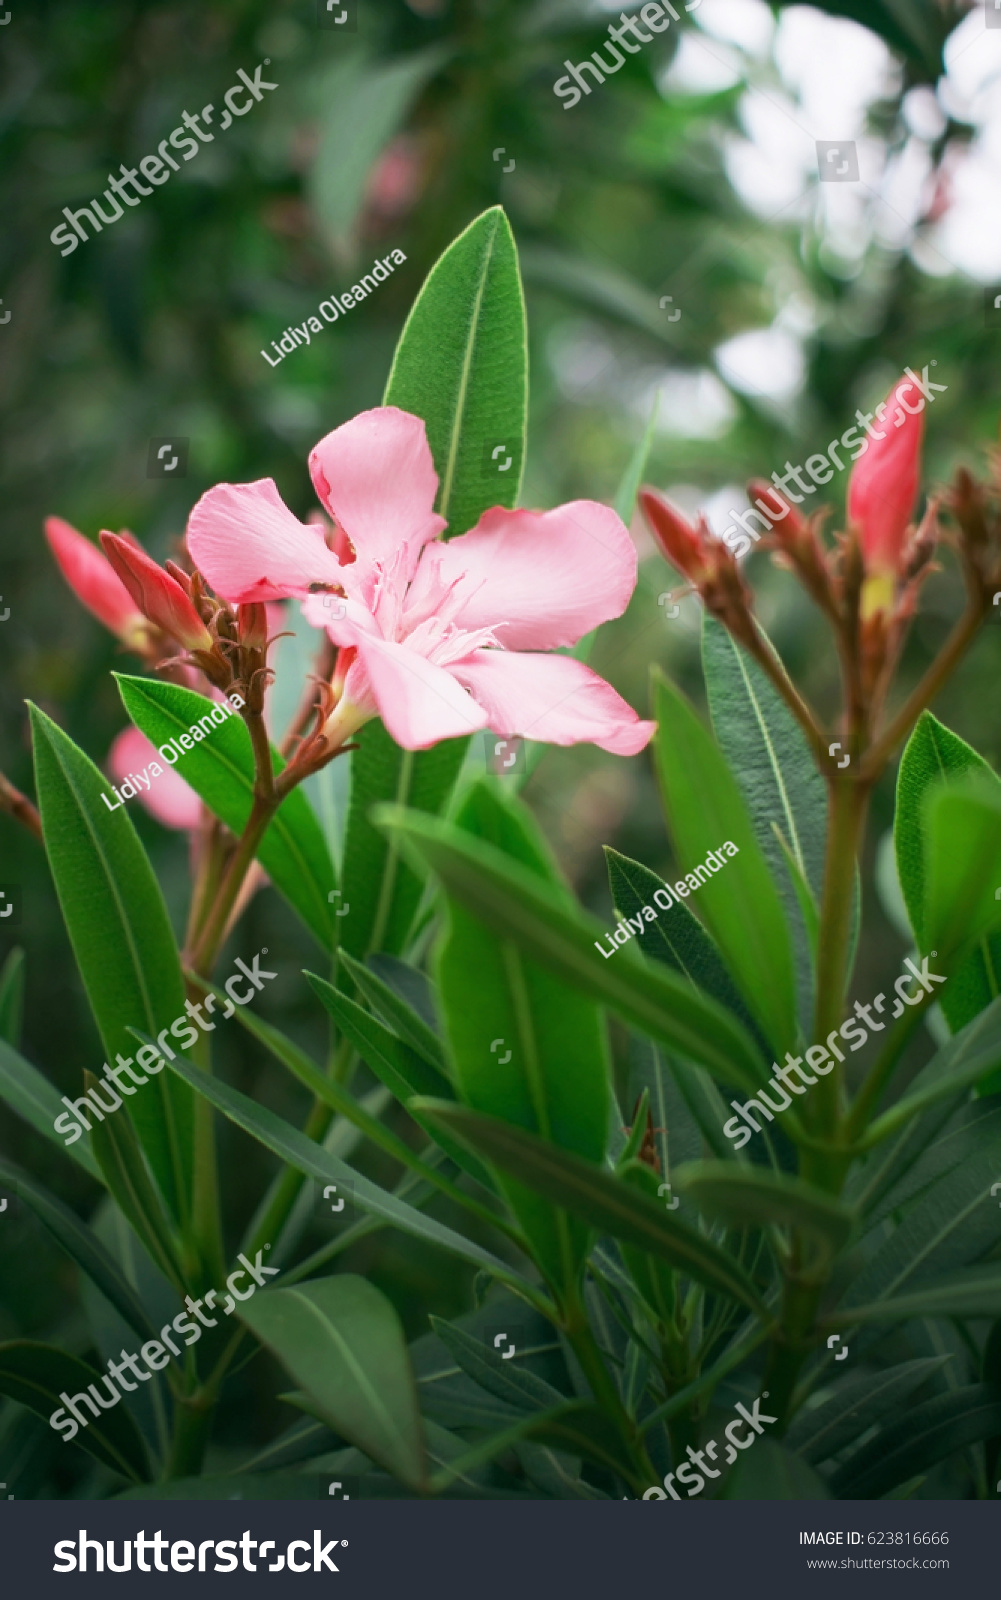 Nerium Oleander Flowers Stock Photo Edit Now 623816666 Shutterstock